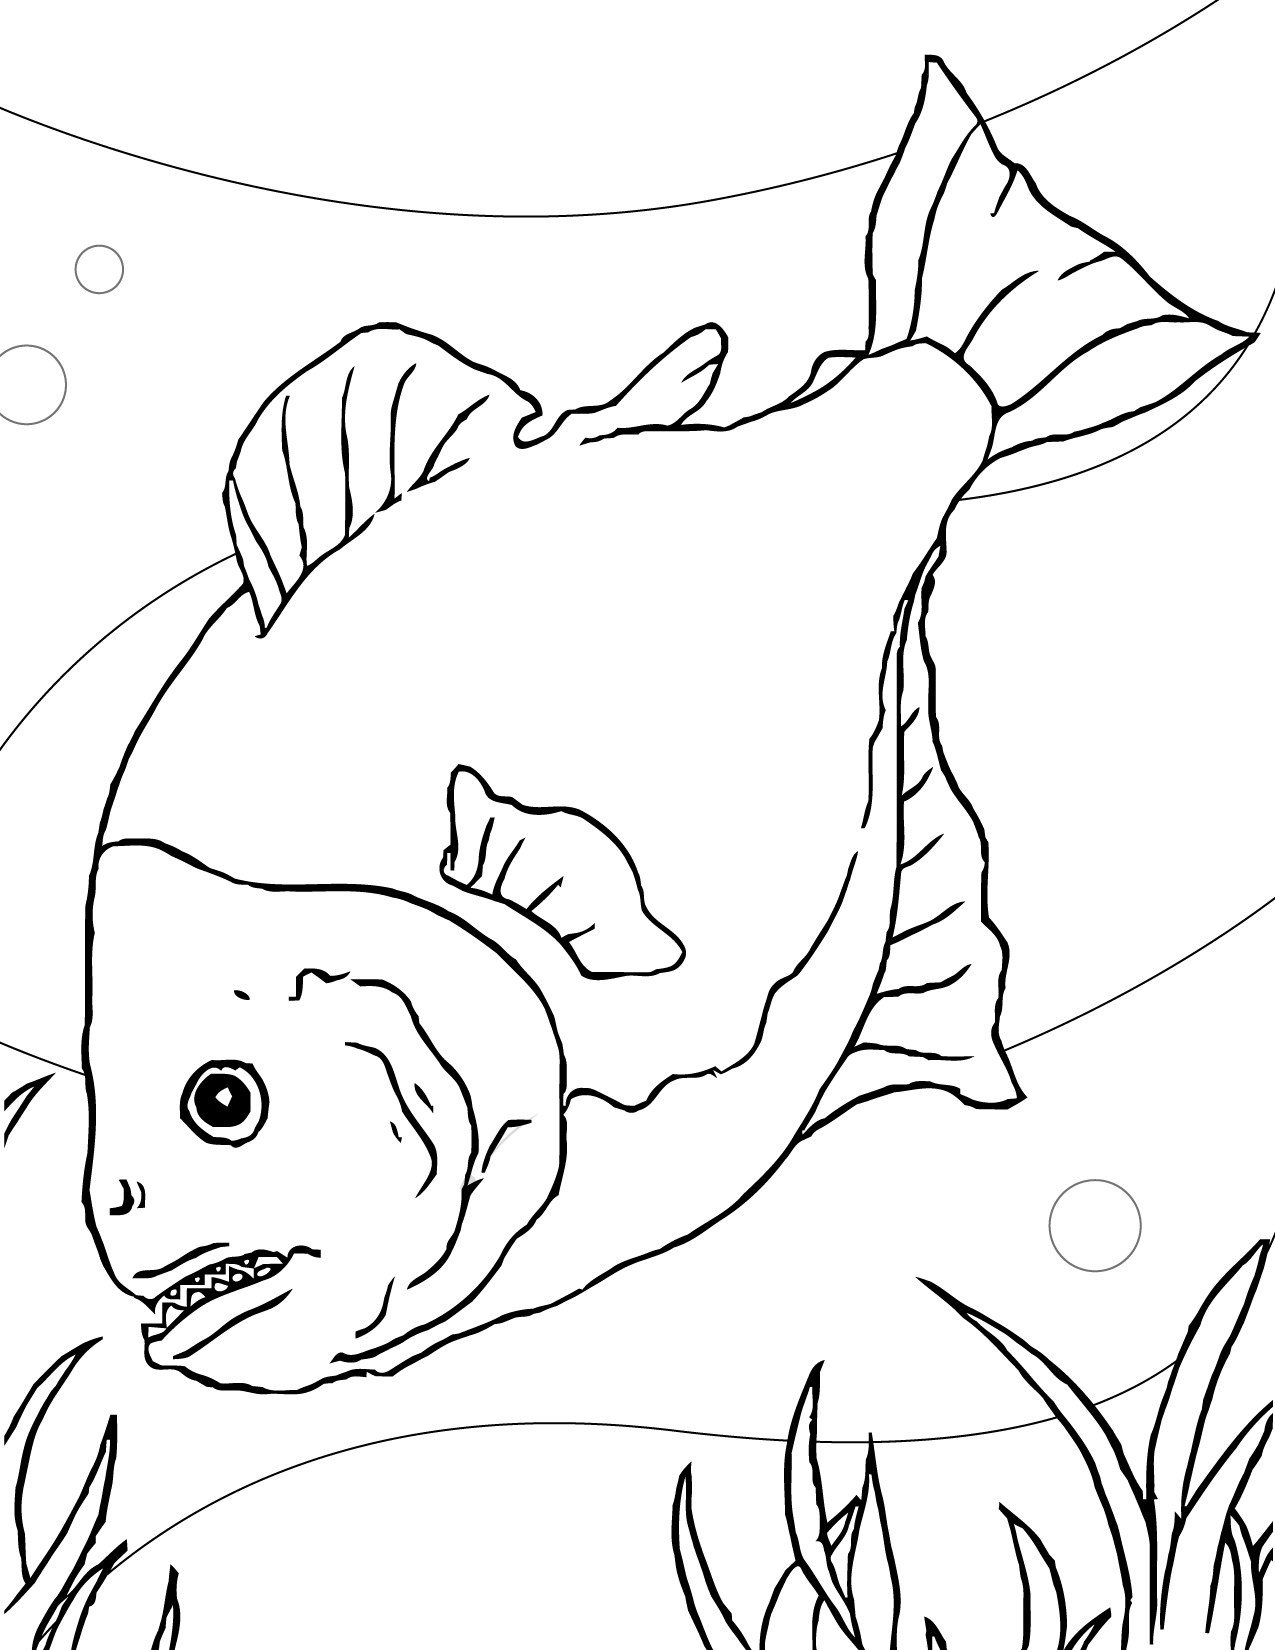 piranha - Aquarium Coloring Pages Printable